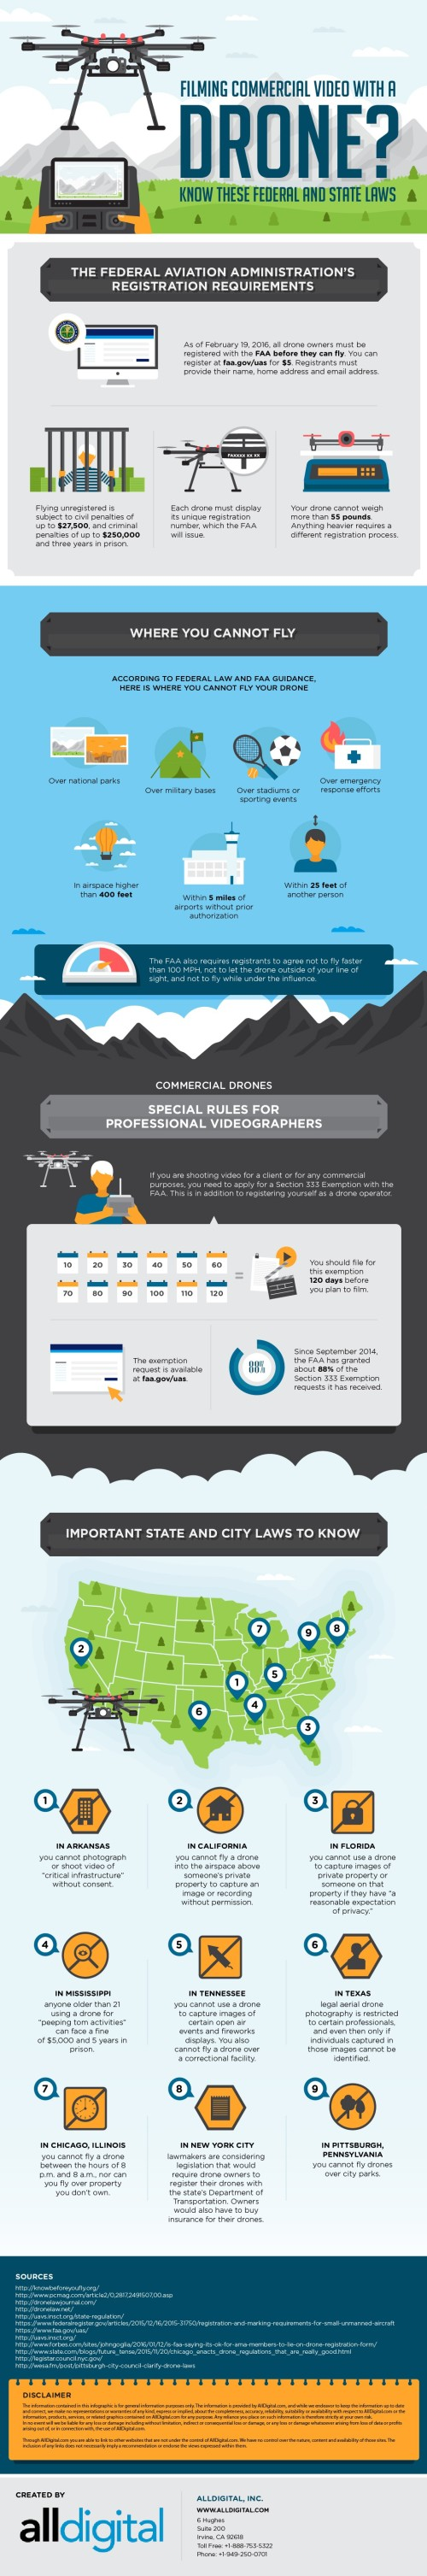 New Drone Infographic-AllDigital